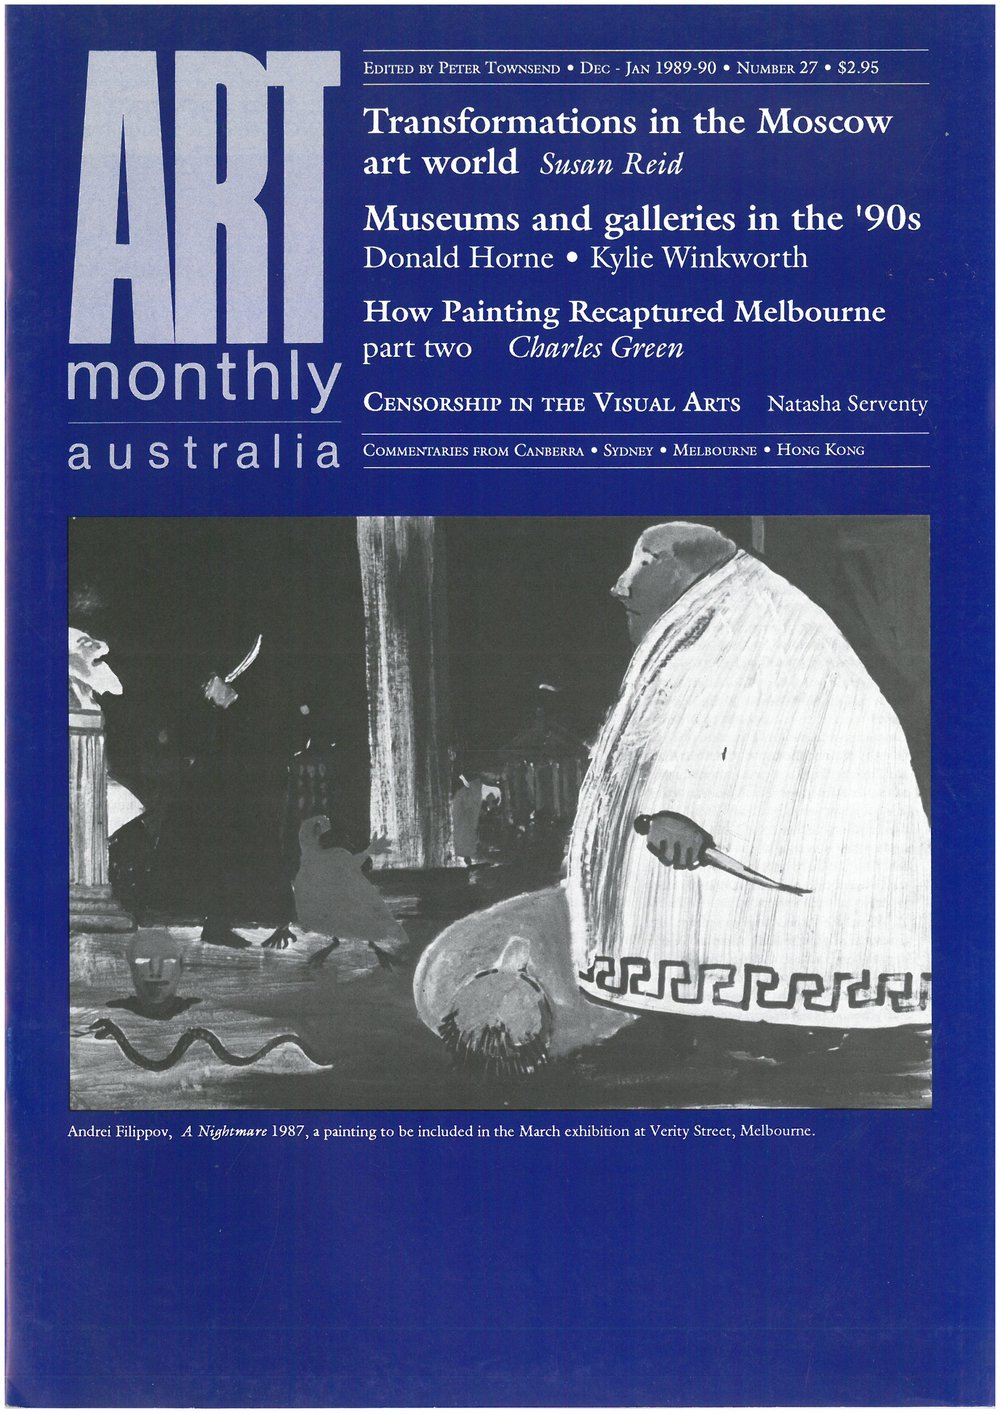 Issue 27 Dec-Jan 1989-90